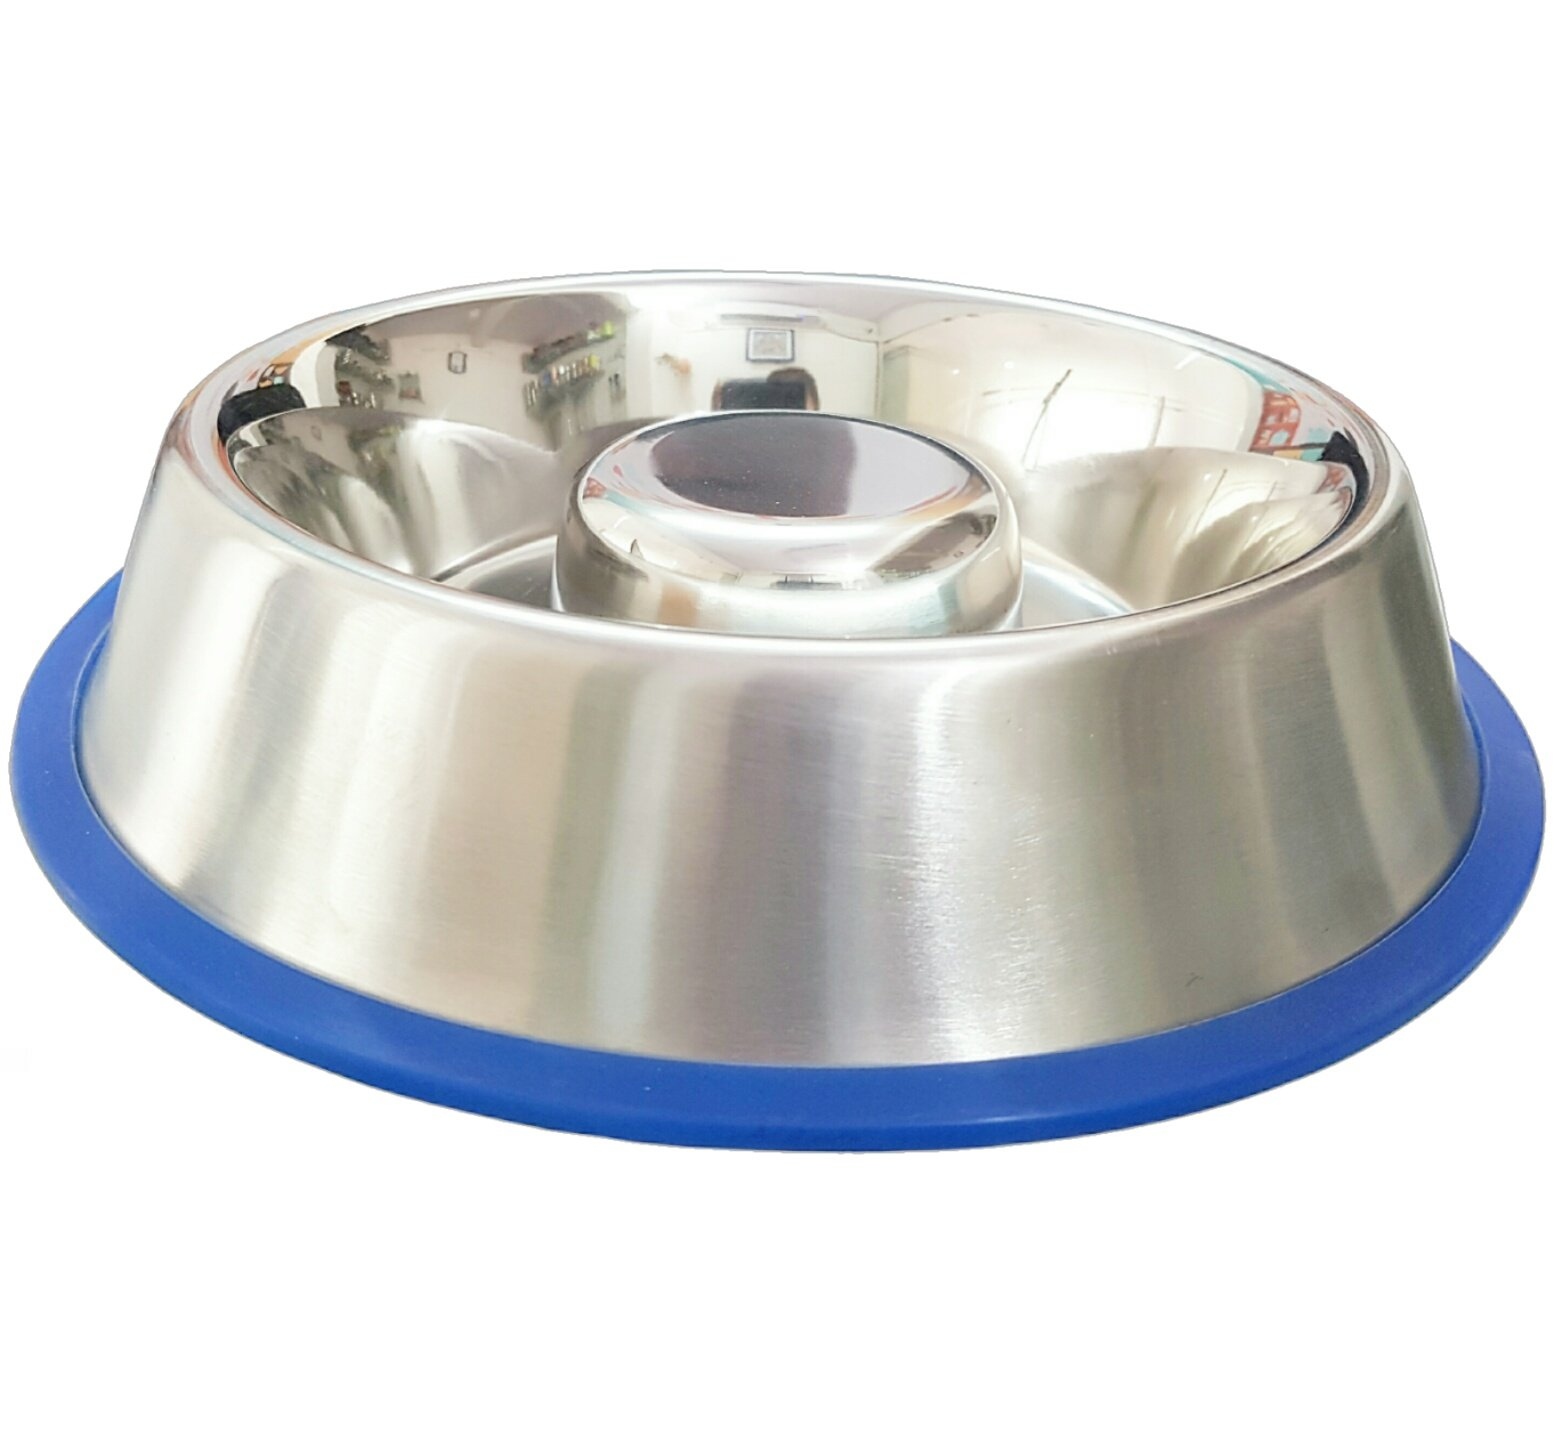 Mr. Peanut's Stainless Steel Interactive Slow Feed Dog Bowl with a Silicone Base, Fun Healthy Bloat Stop Feeder (Medium)